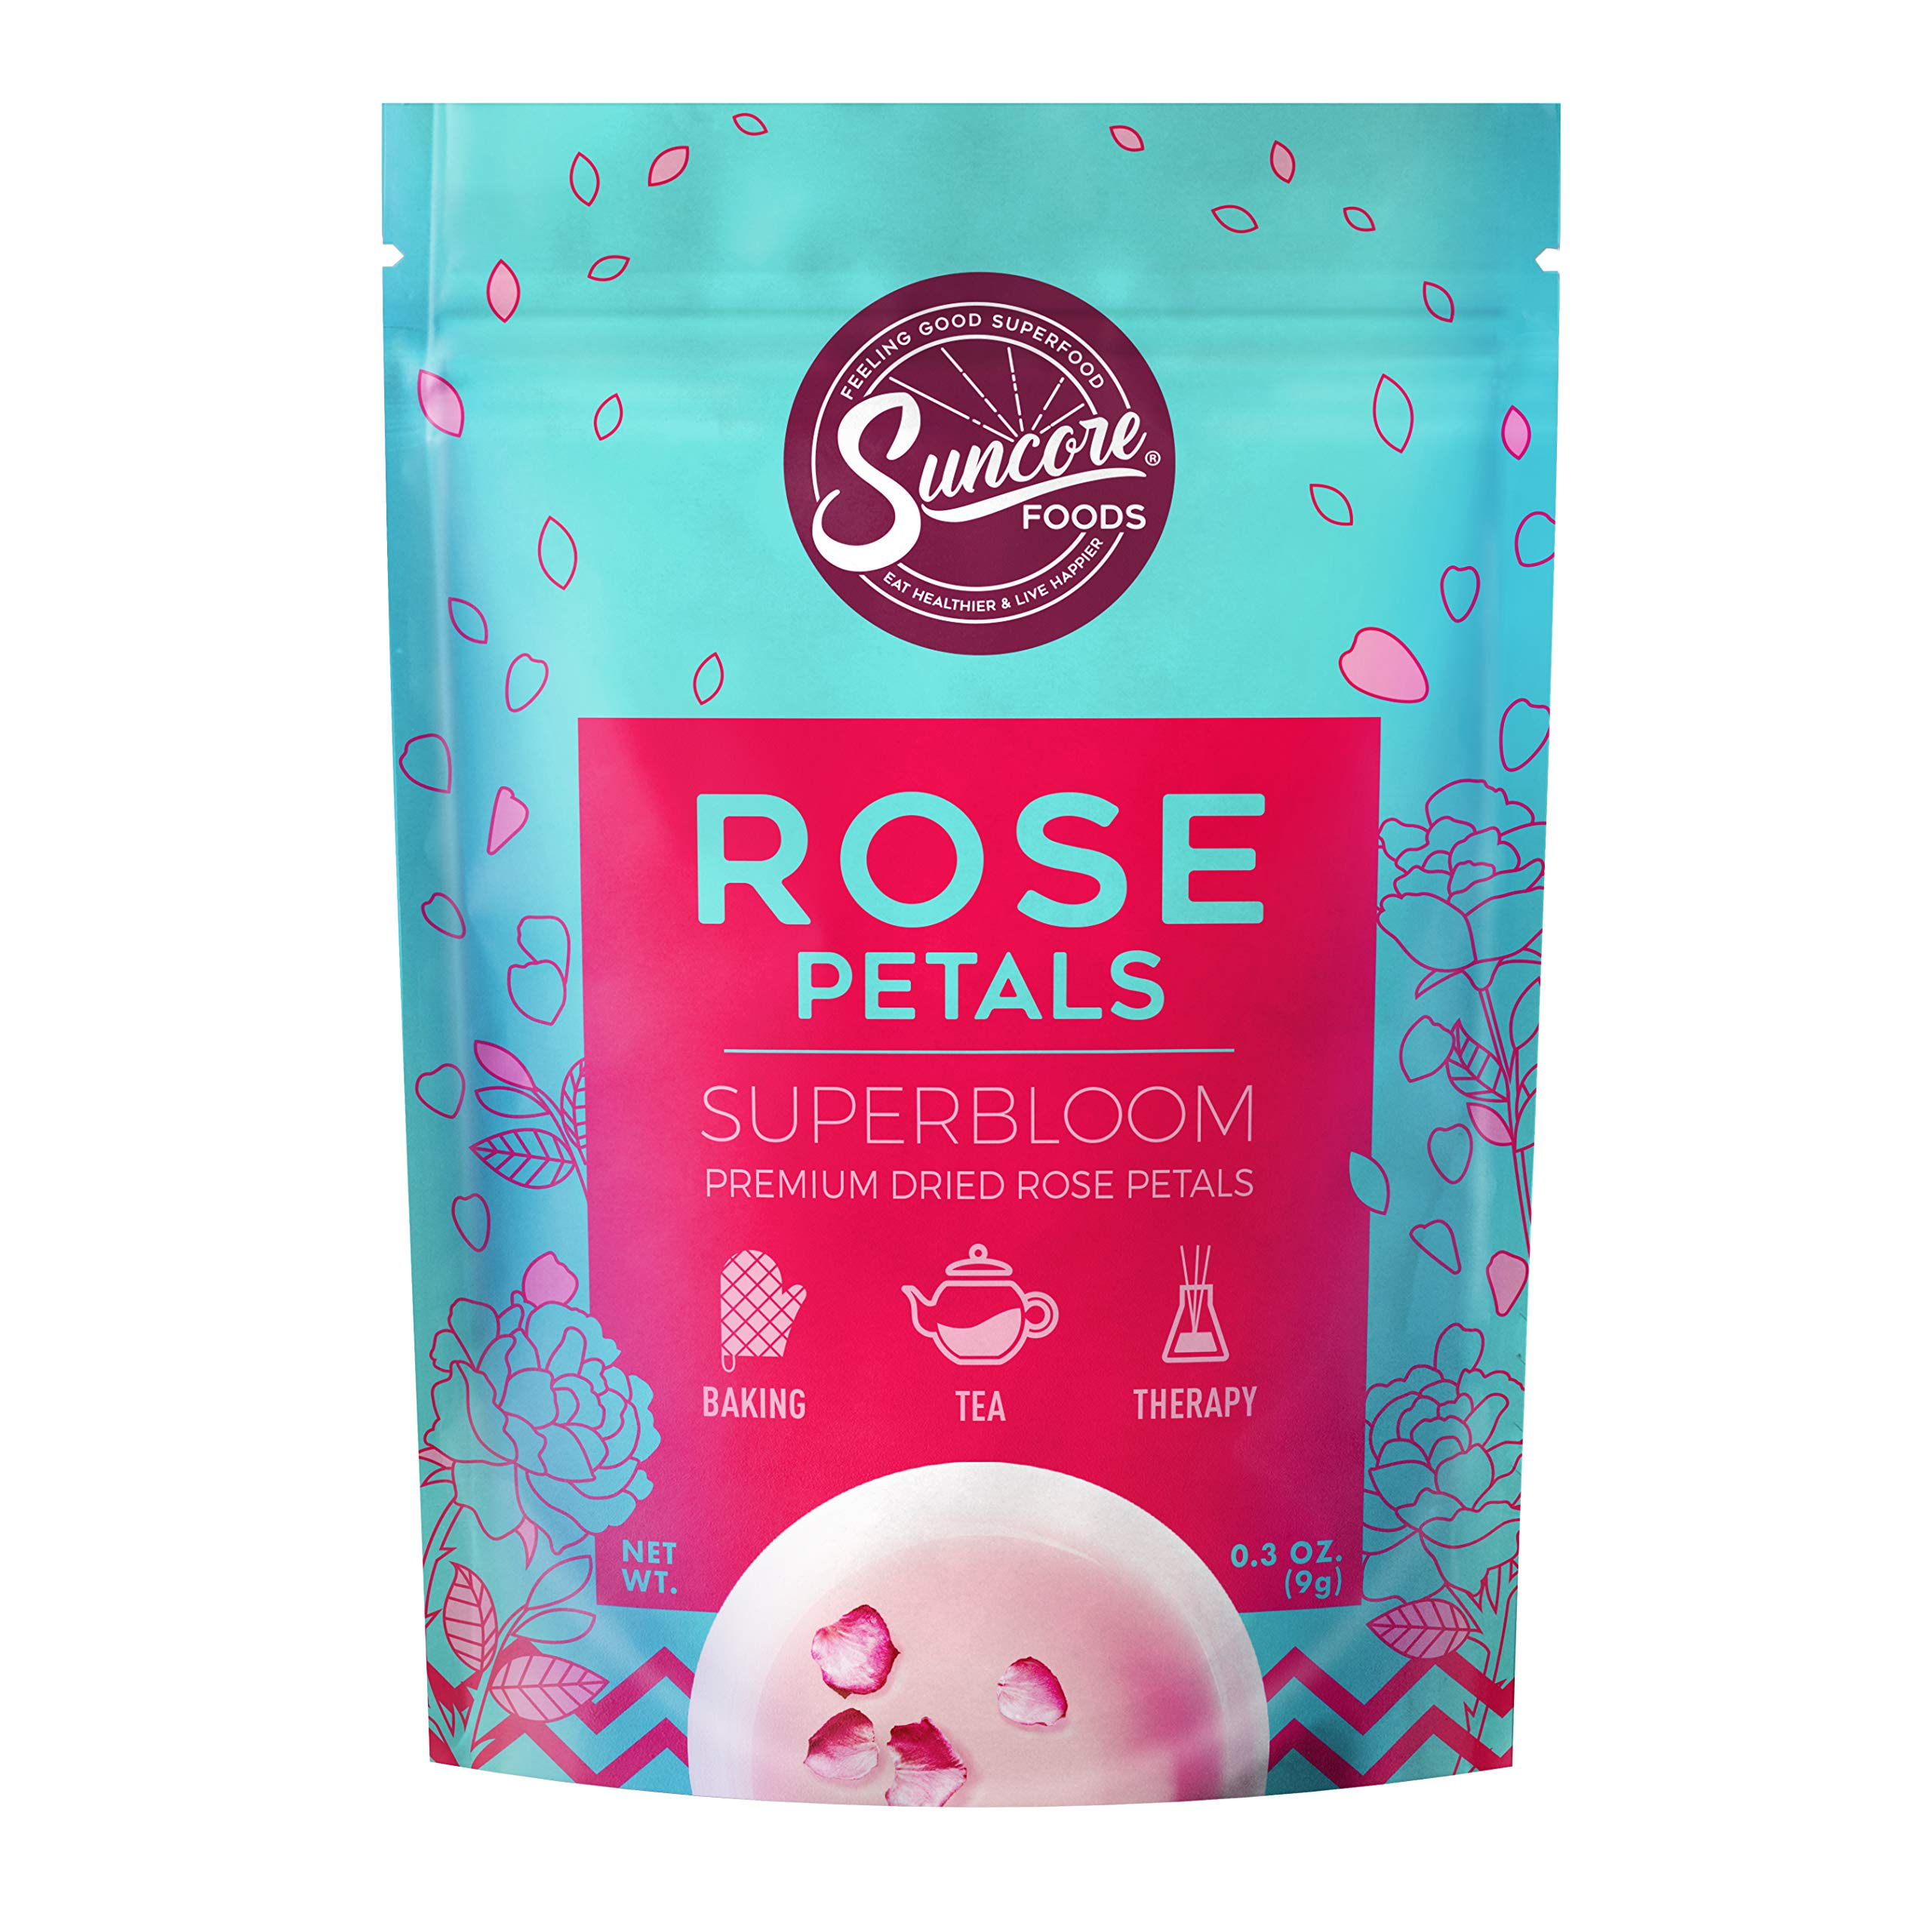 Suncore Foods - Premium Dried Rose Petals Superbloom, No Caffeine, No Preservatives, 0.3oz